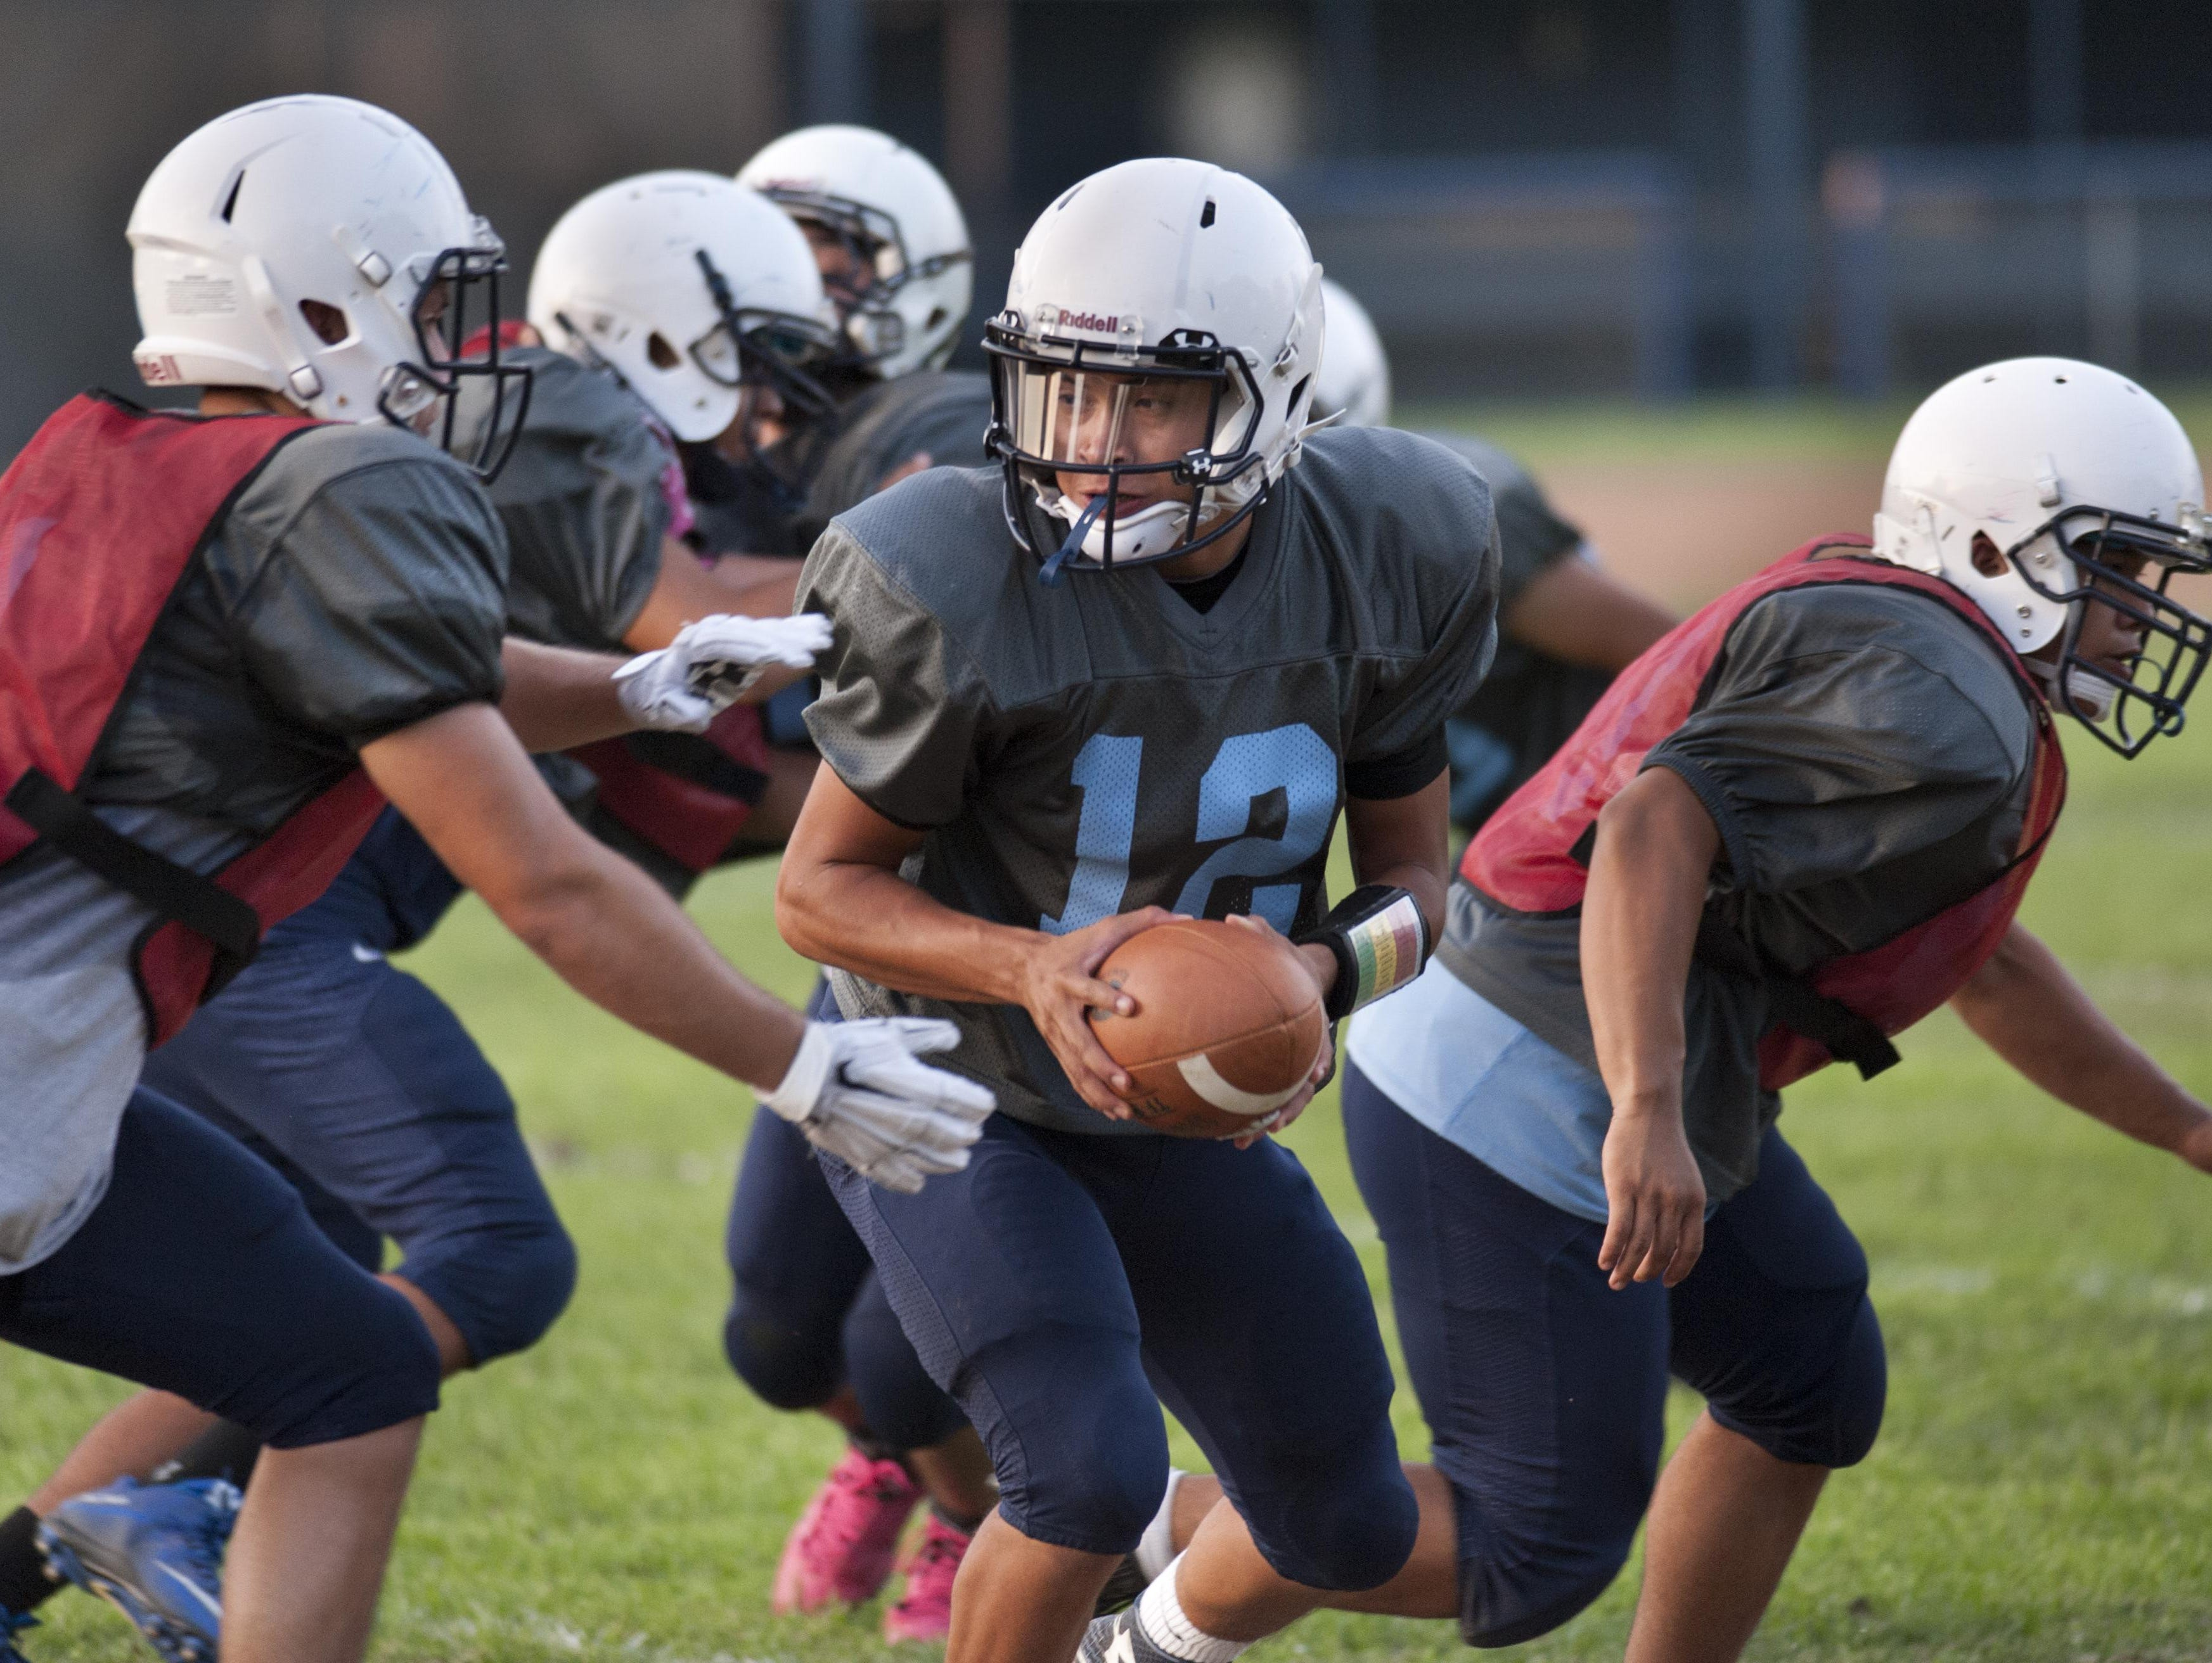 Redwood junior quarterback Frankie Ayon runs a play during practice on Tuesday.